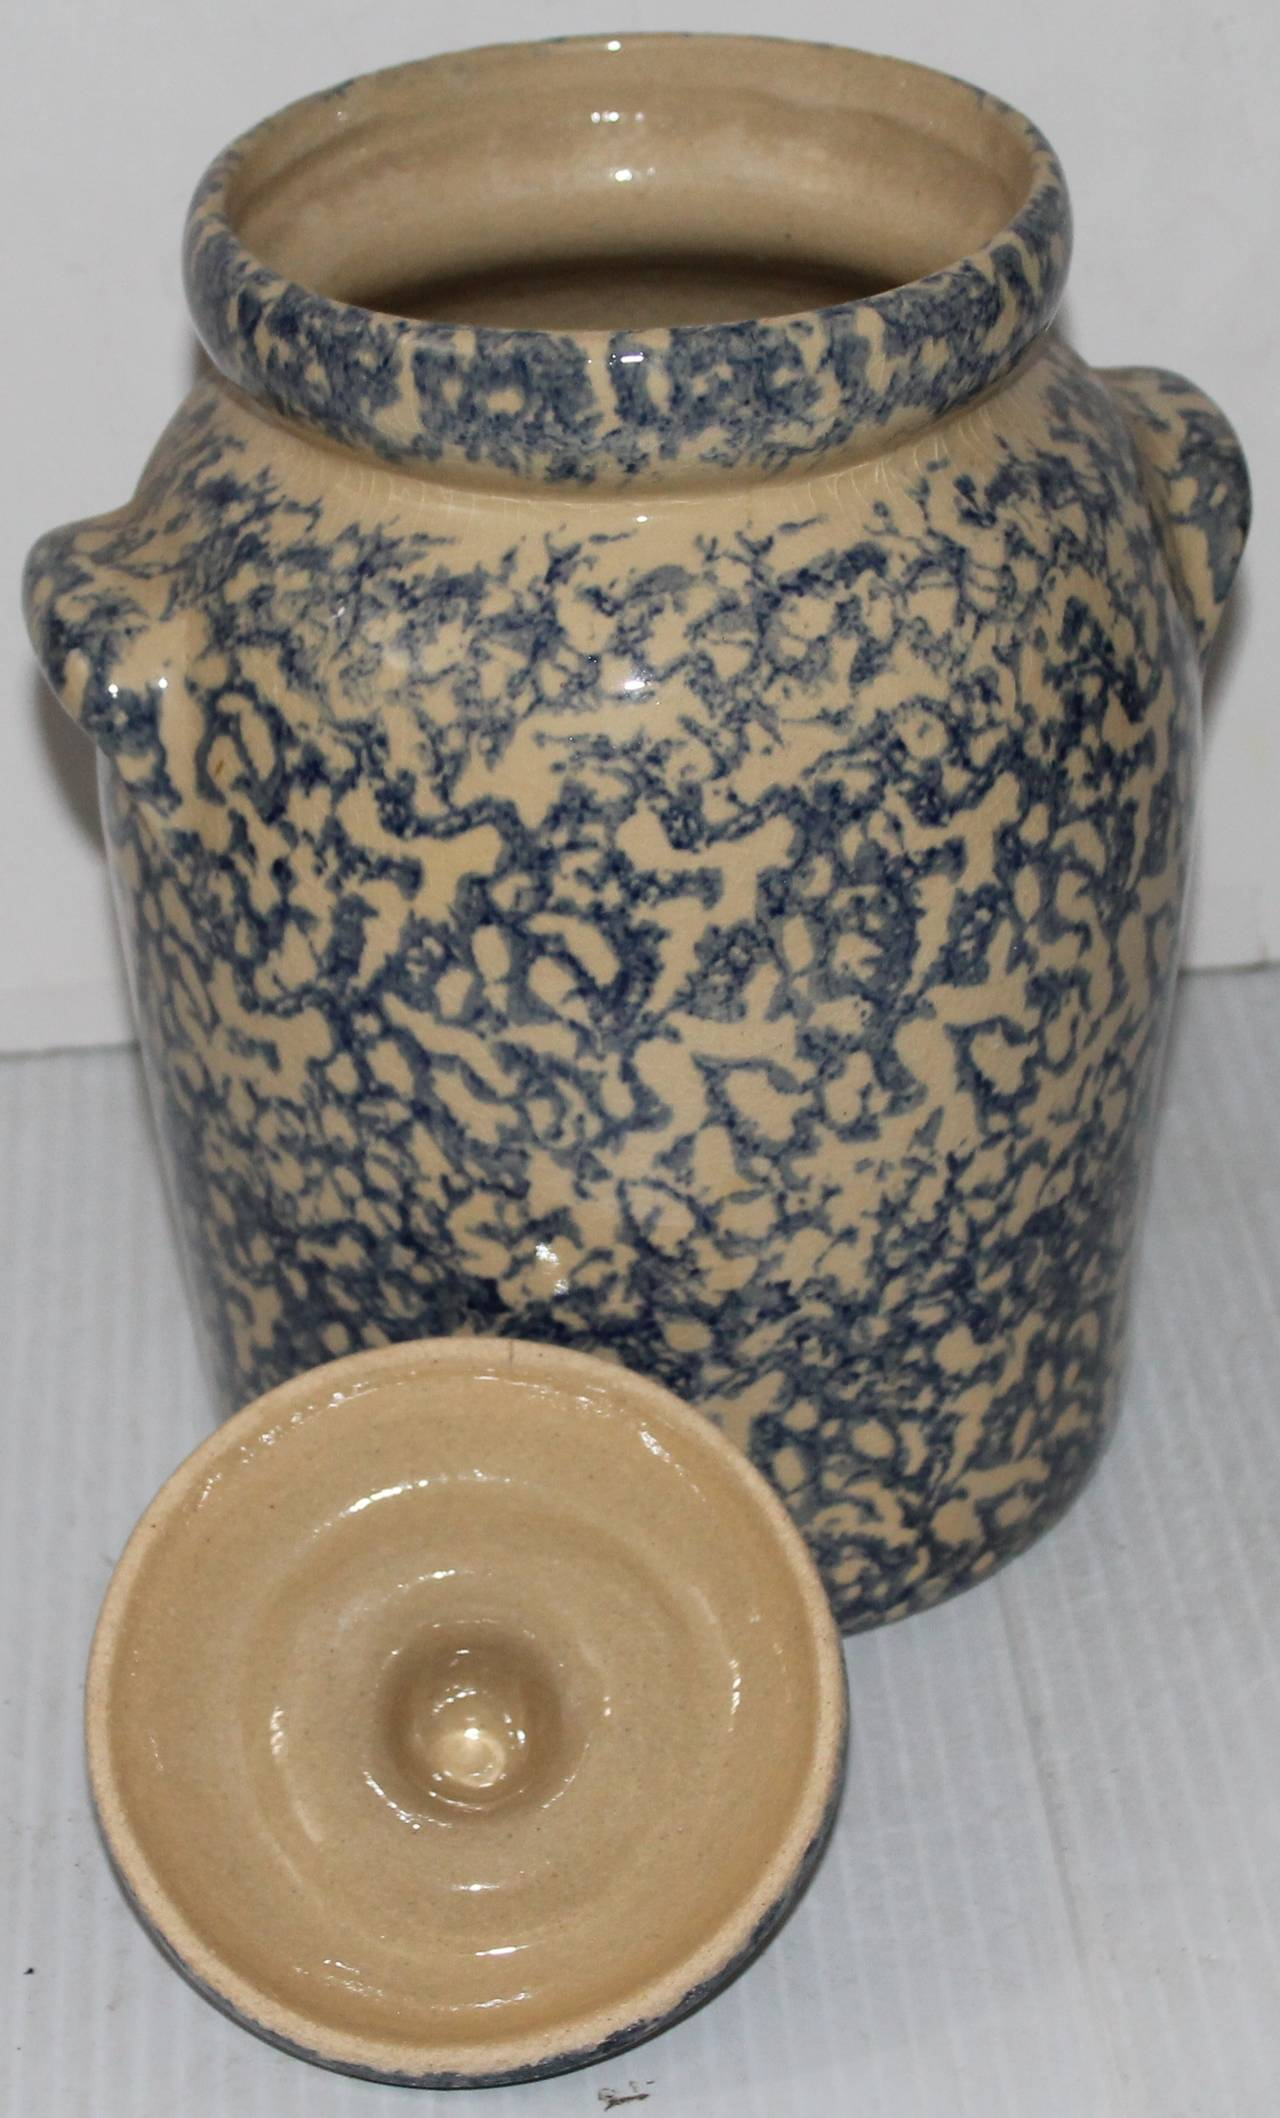 Dating robinson ransbottom pottery